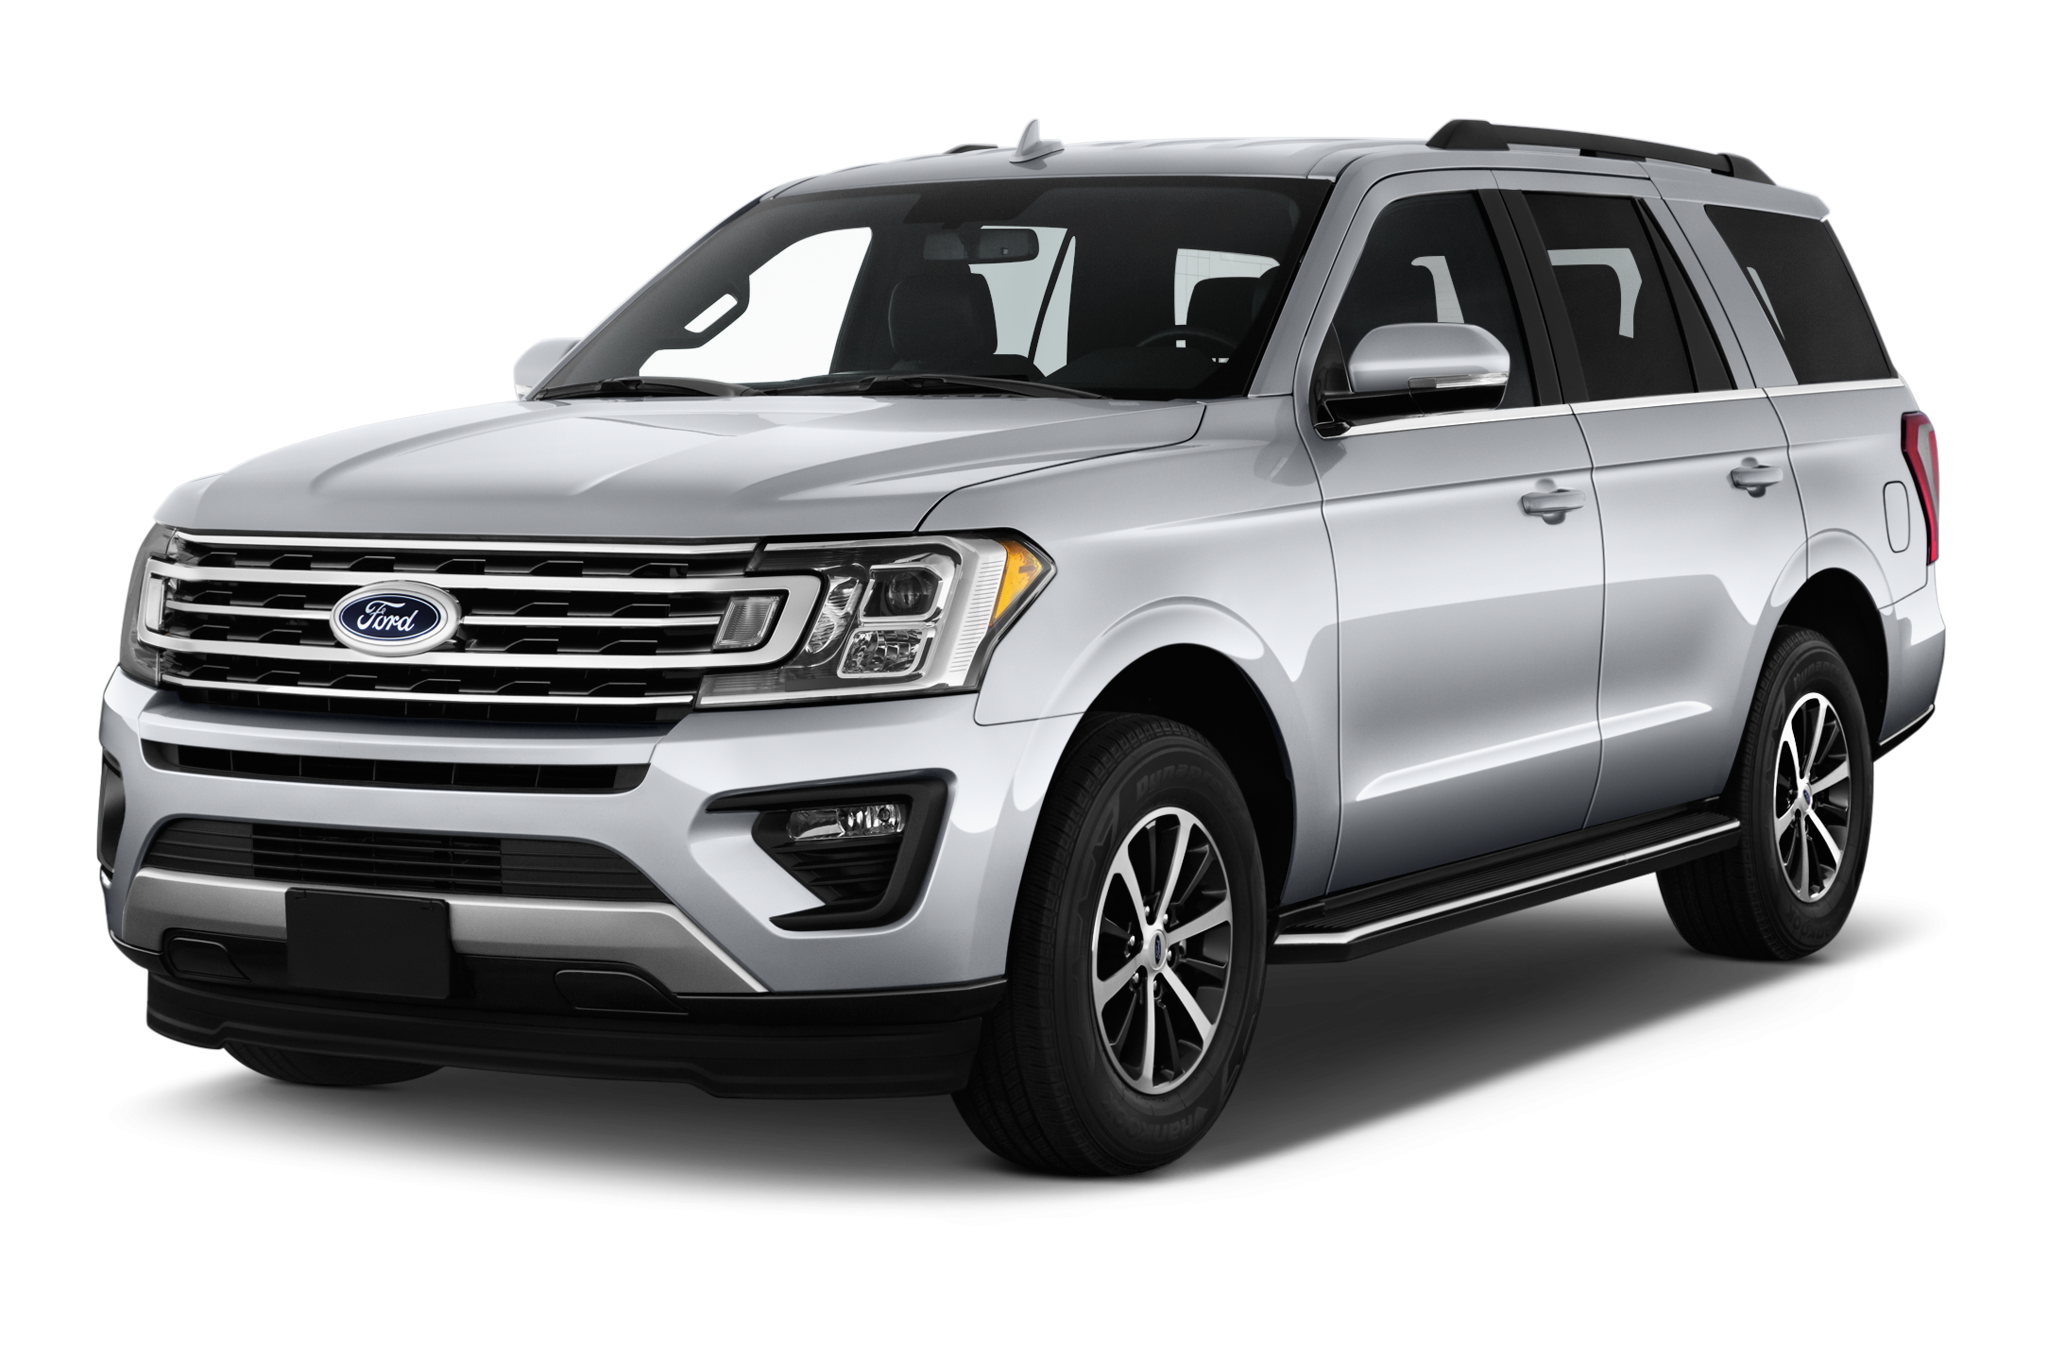 2021 Ford Expedition - New Ford Expedition Prices, Models